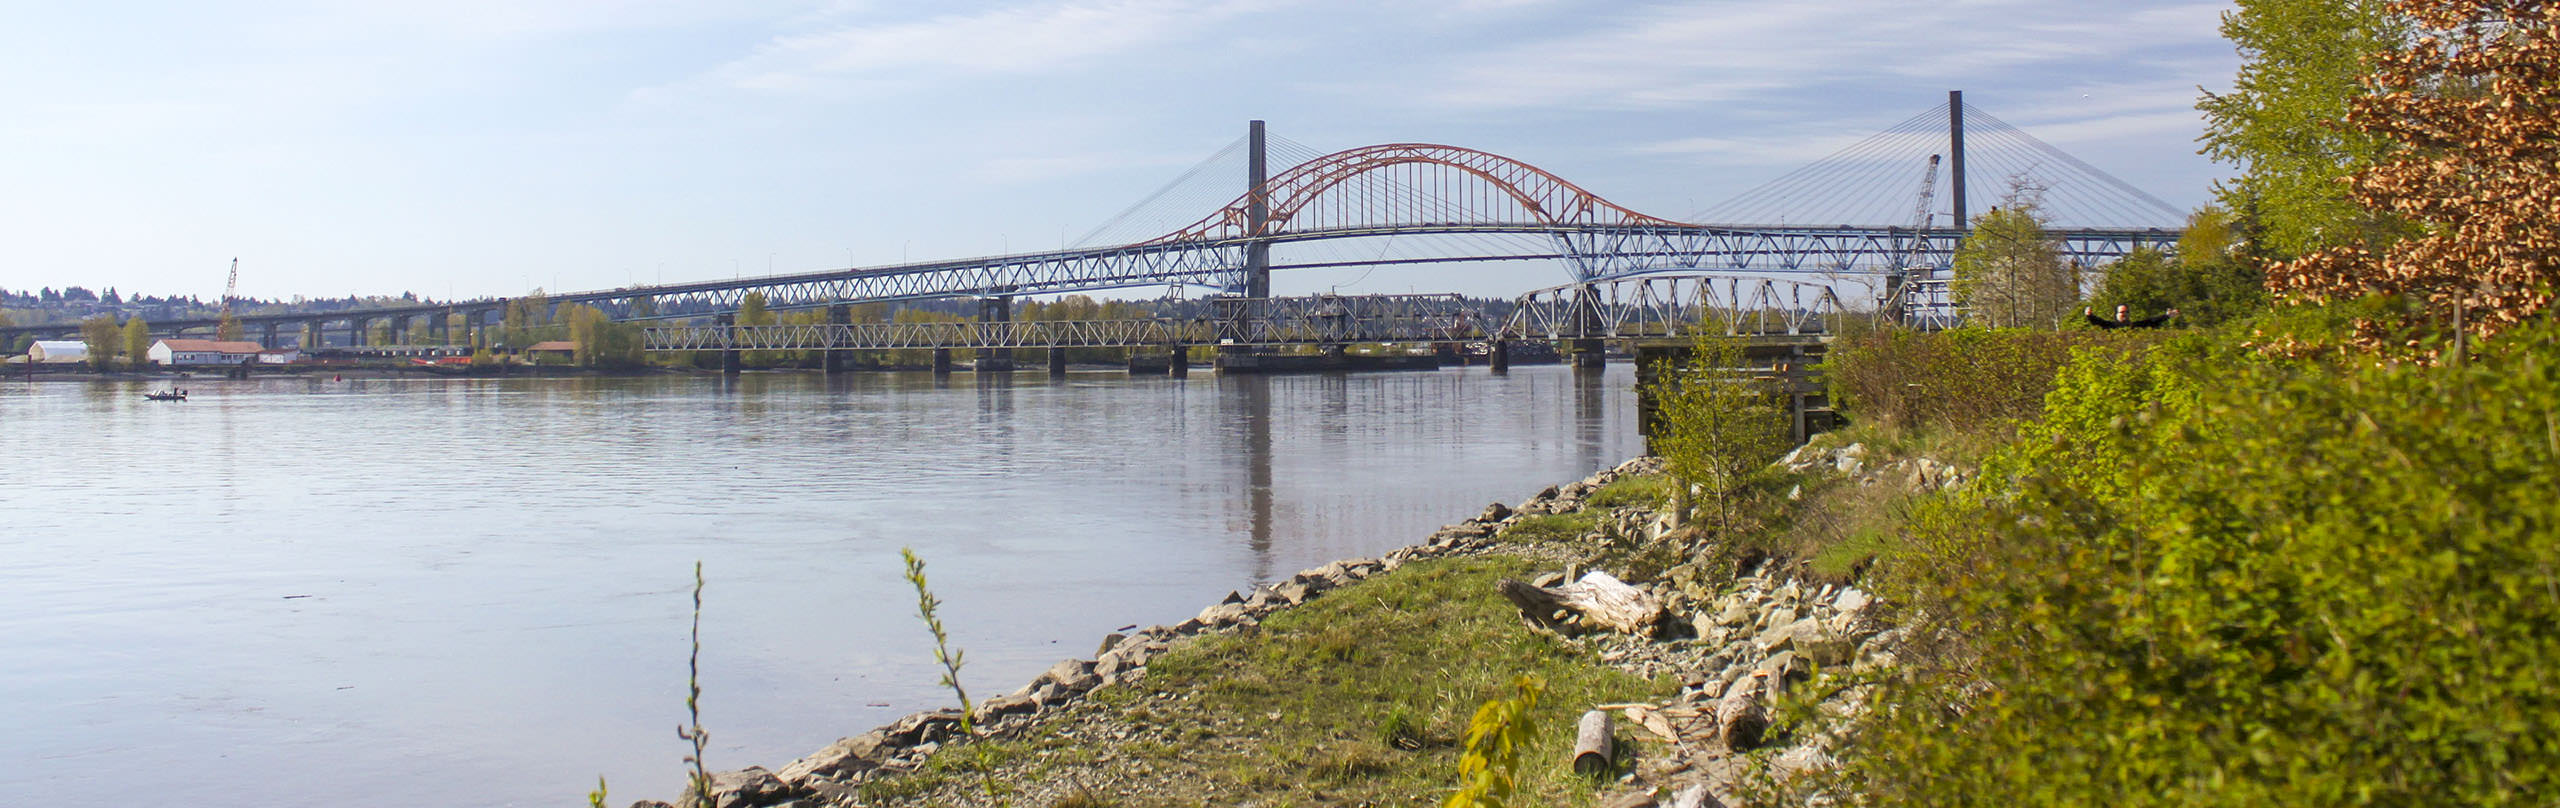 A view along the Fraser River towards the Pattulo Bridge in New Westminster